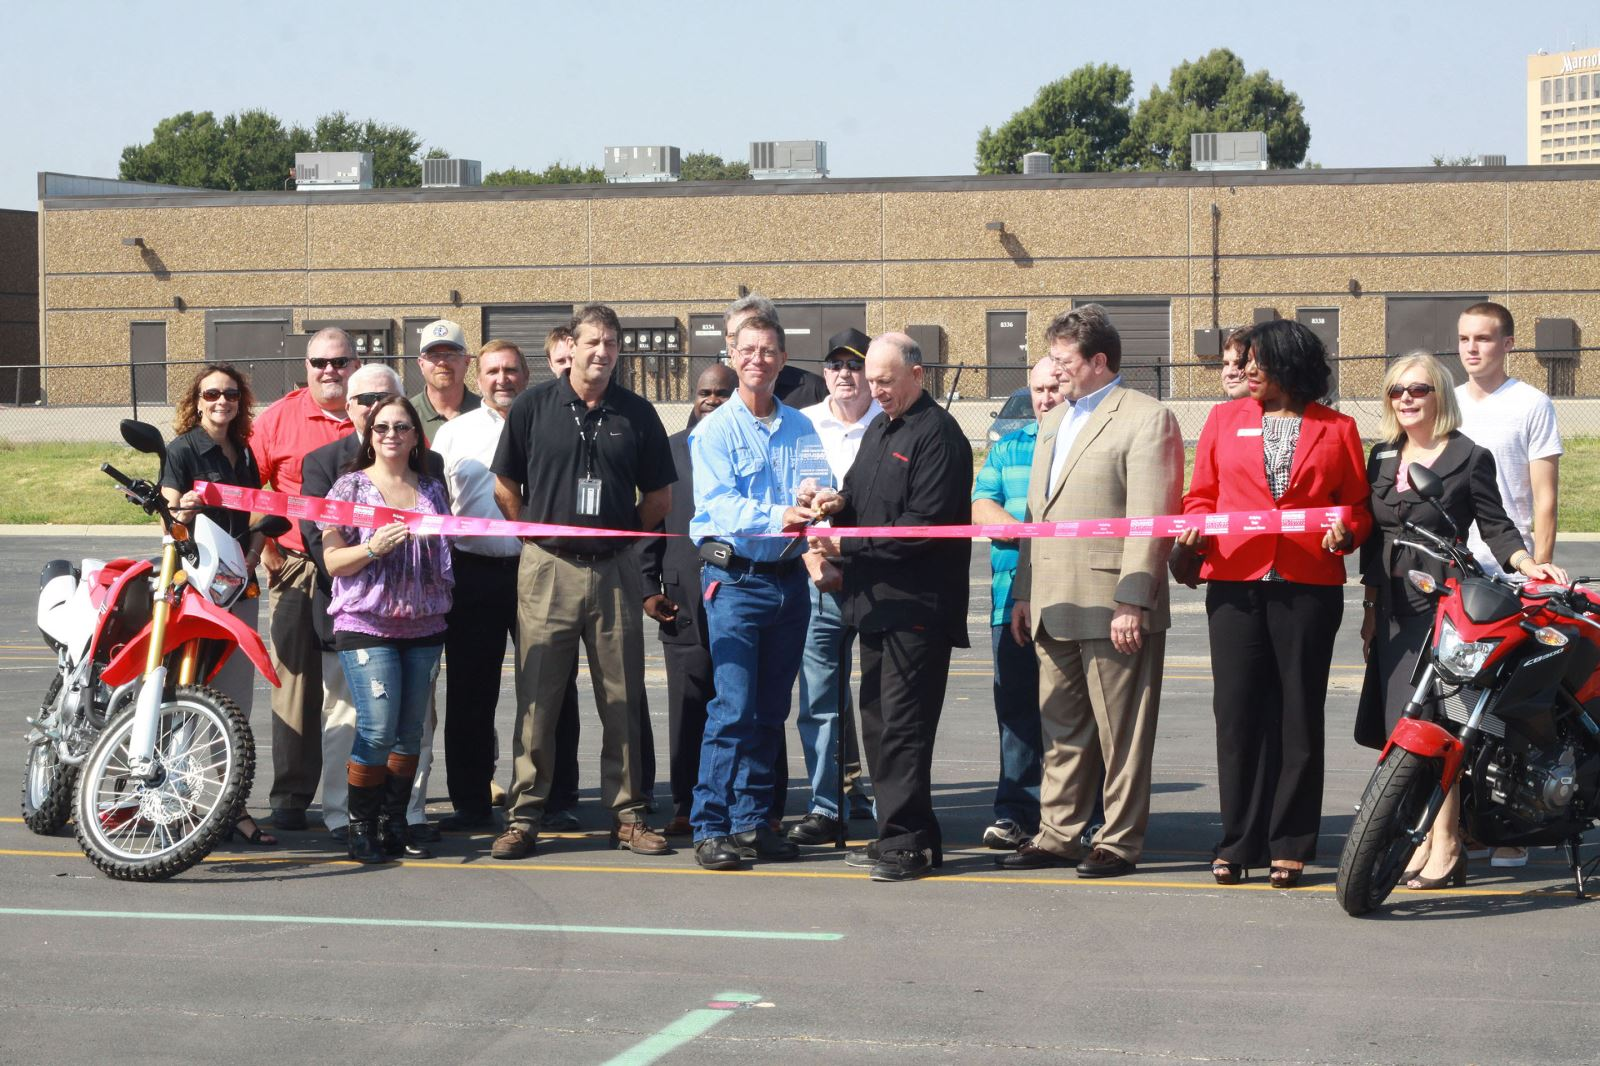 honda rider education center reopens in irving, tx facility to